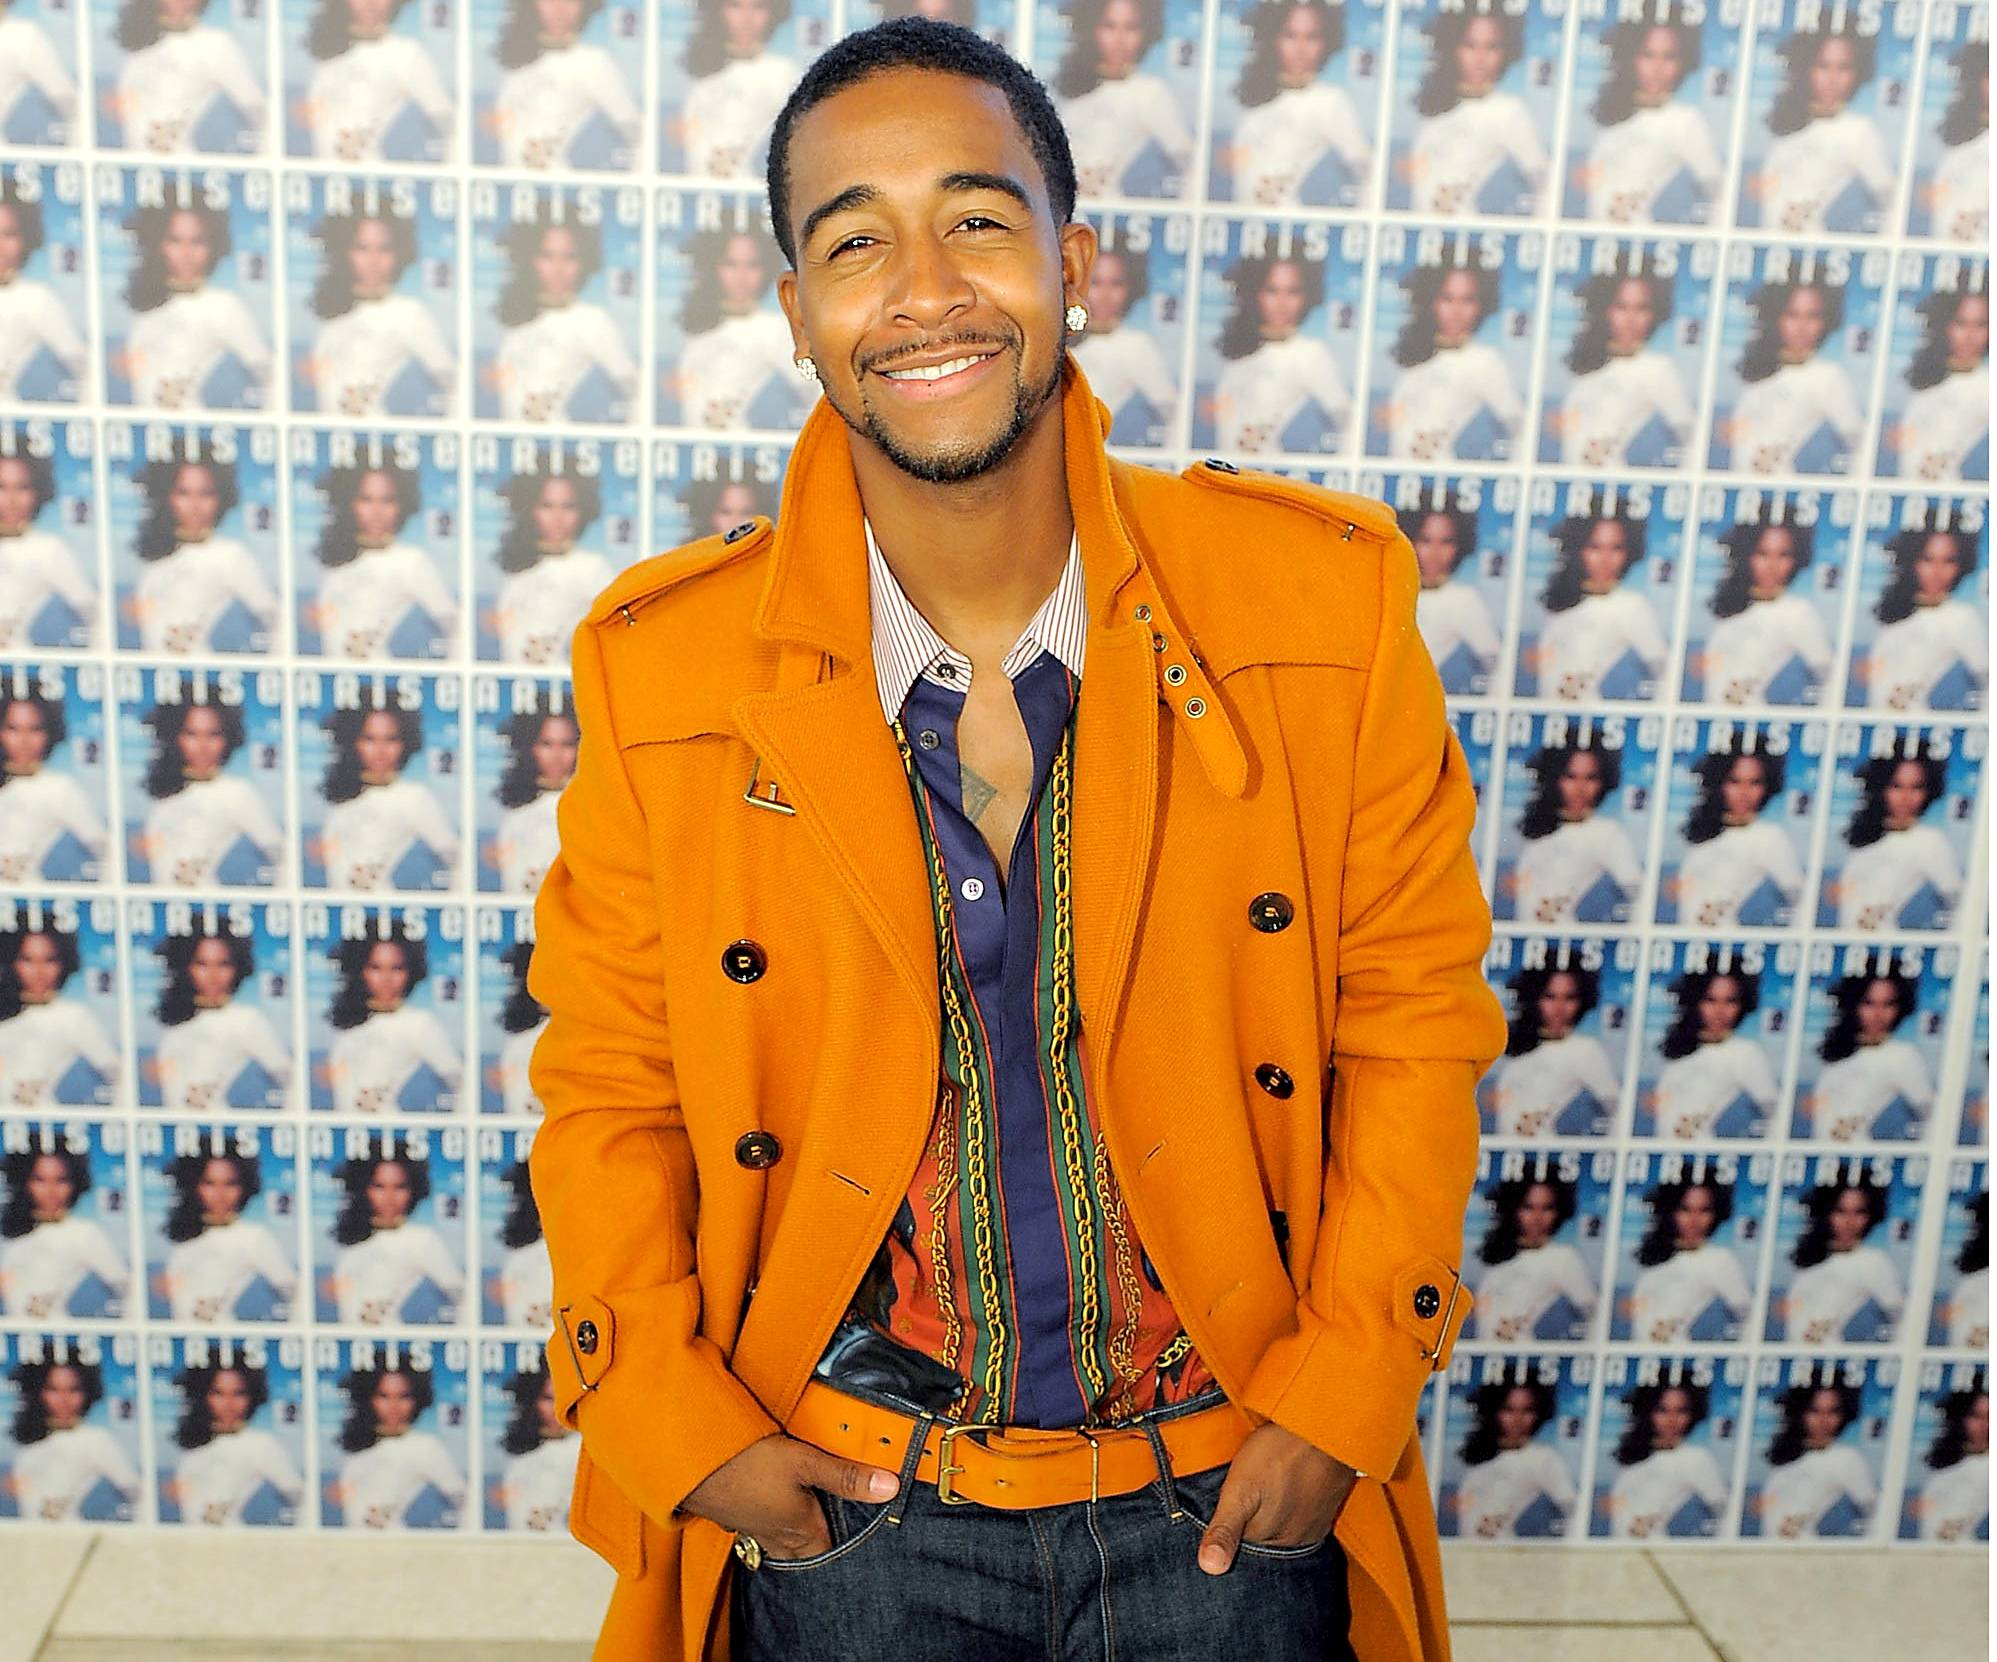 Omarion - From B2K until now, Omarion is still looking good and better than ever before!(Photo: Jemal Countess/Getty Images for IMG)